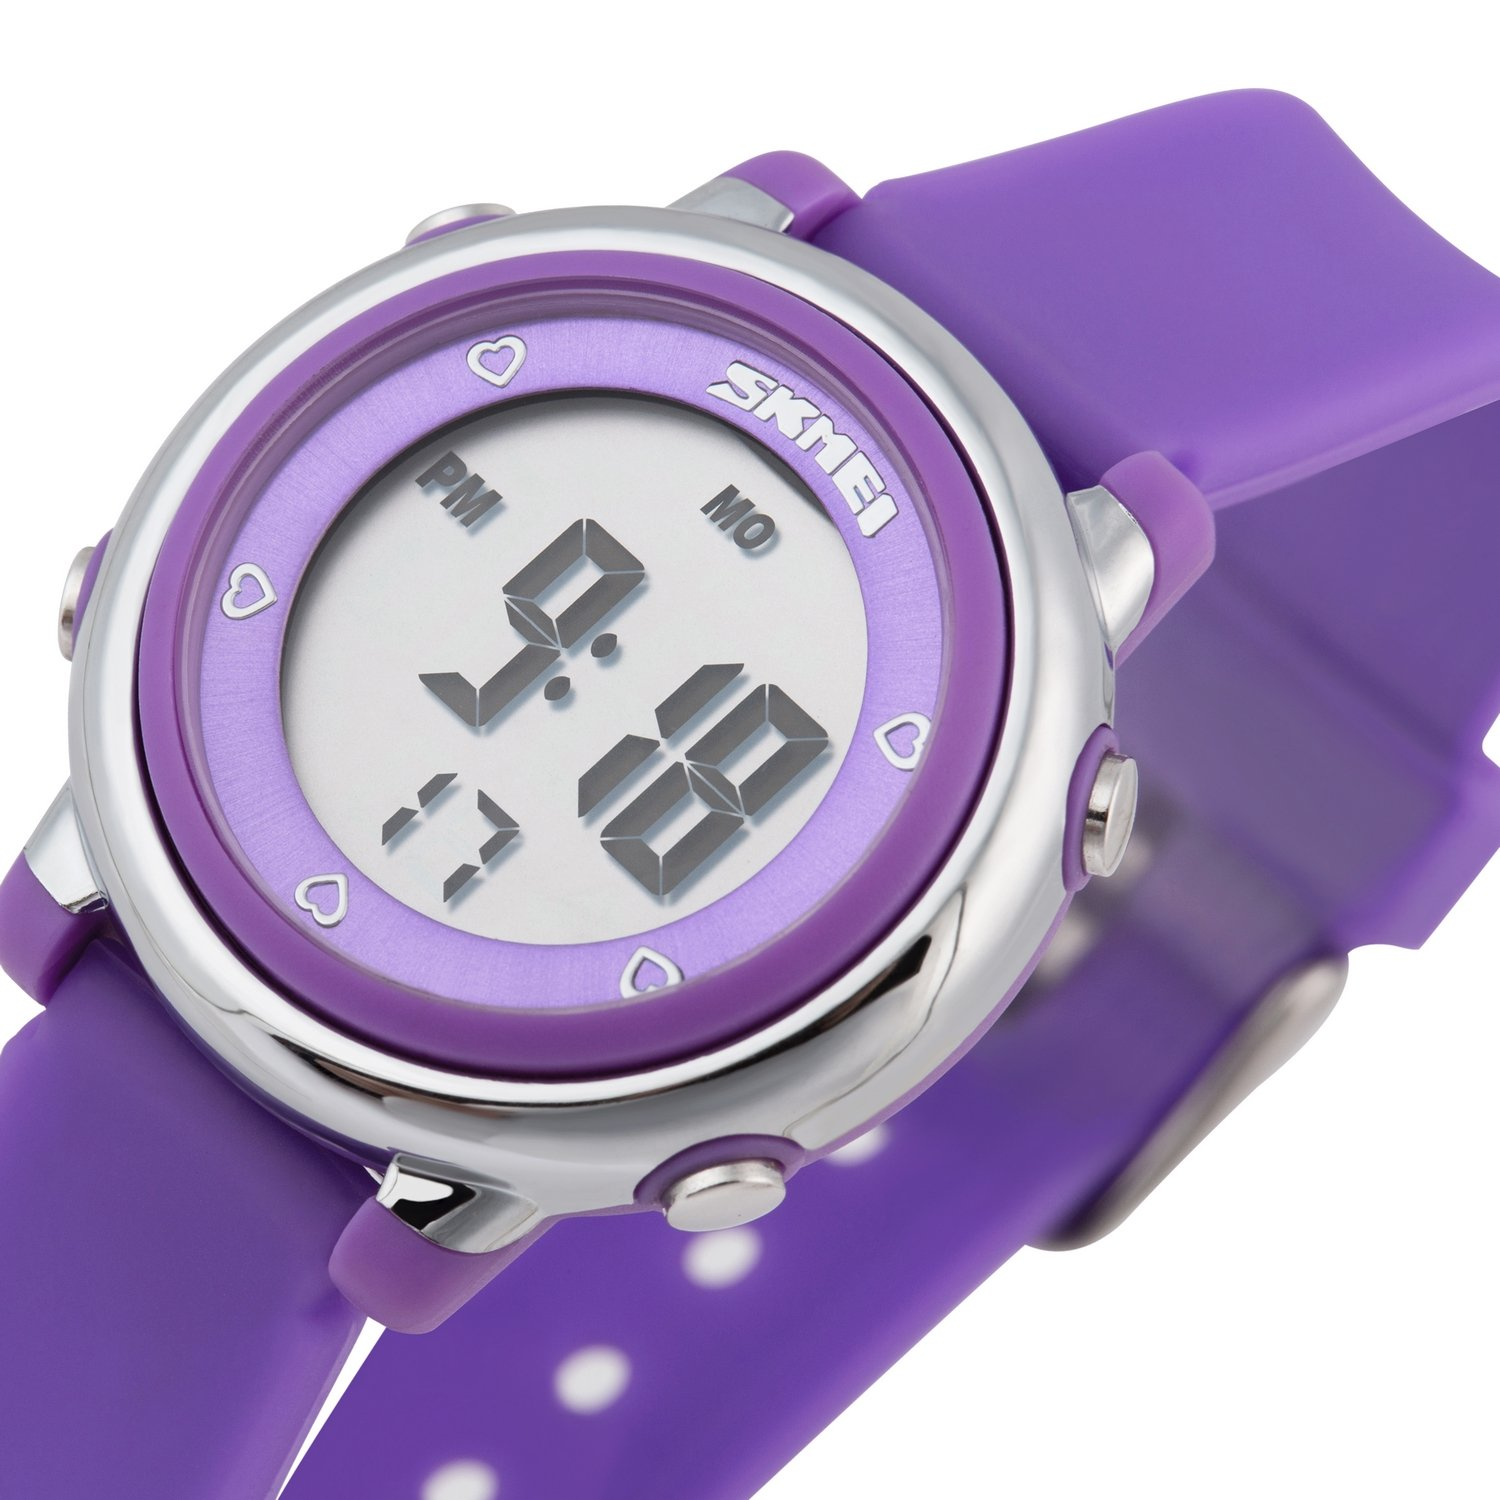 Better line® Digital LCD Kids Watch Band with Hourly Chime, Daily Alarm & Calendar Functions (Purple)